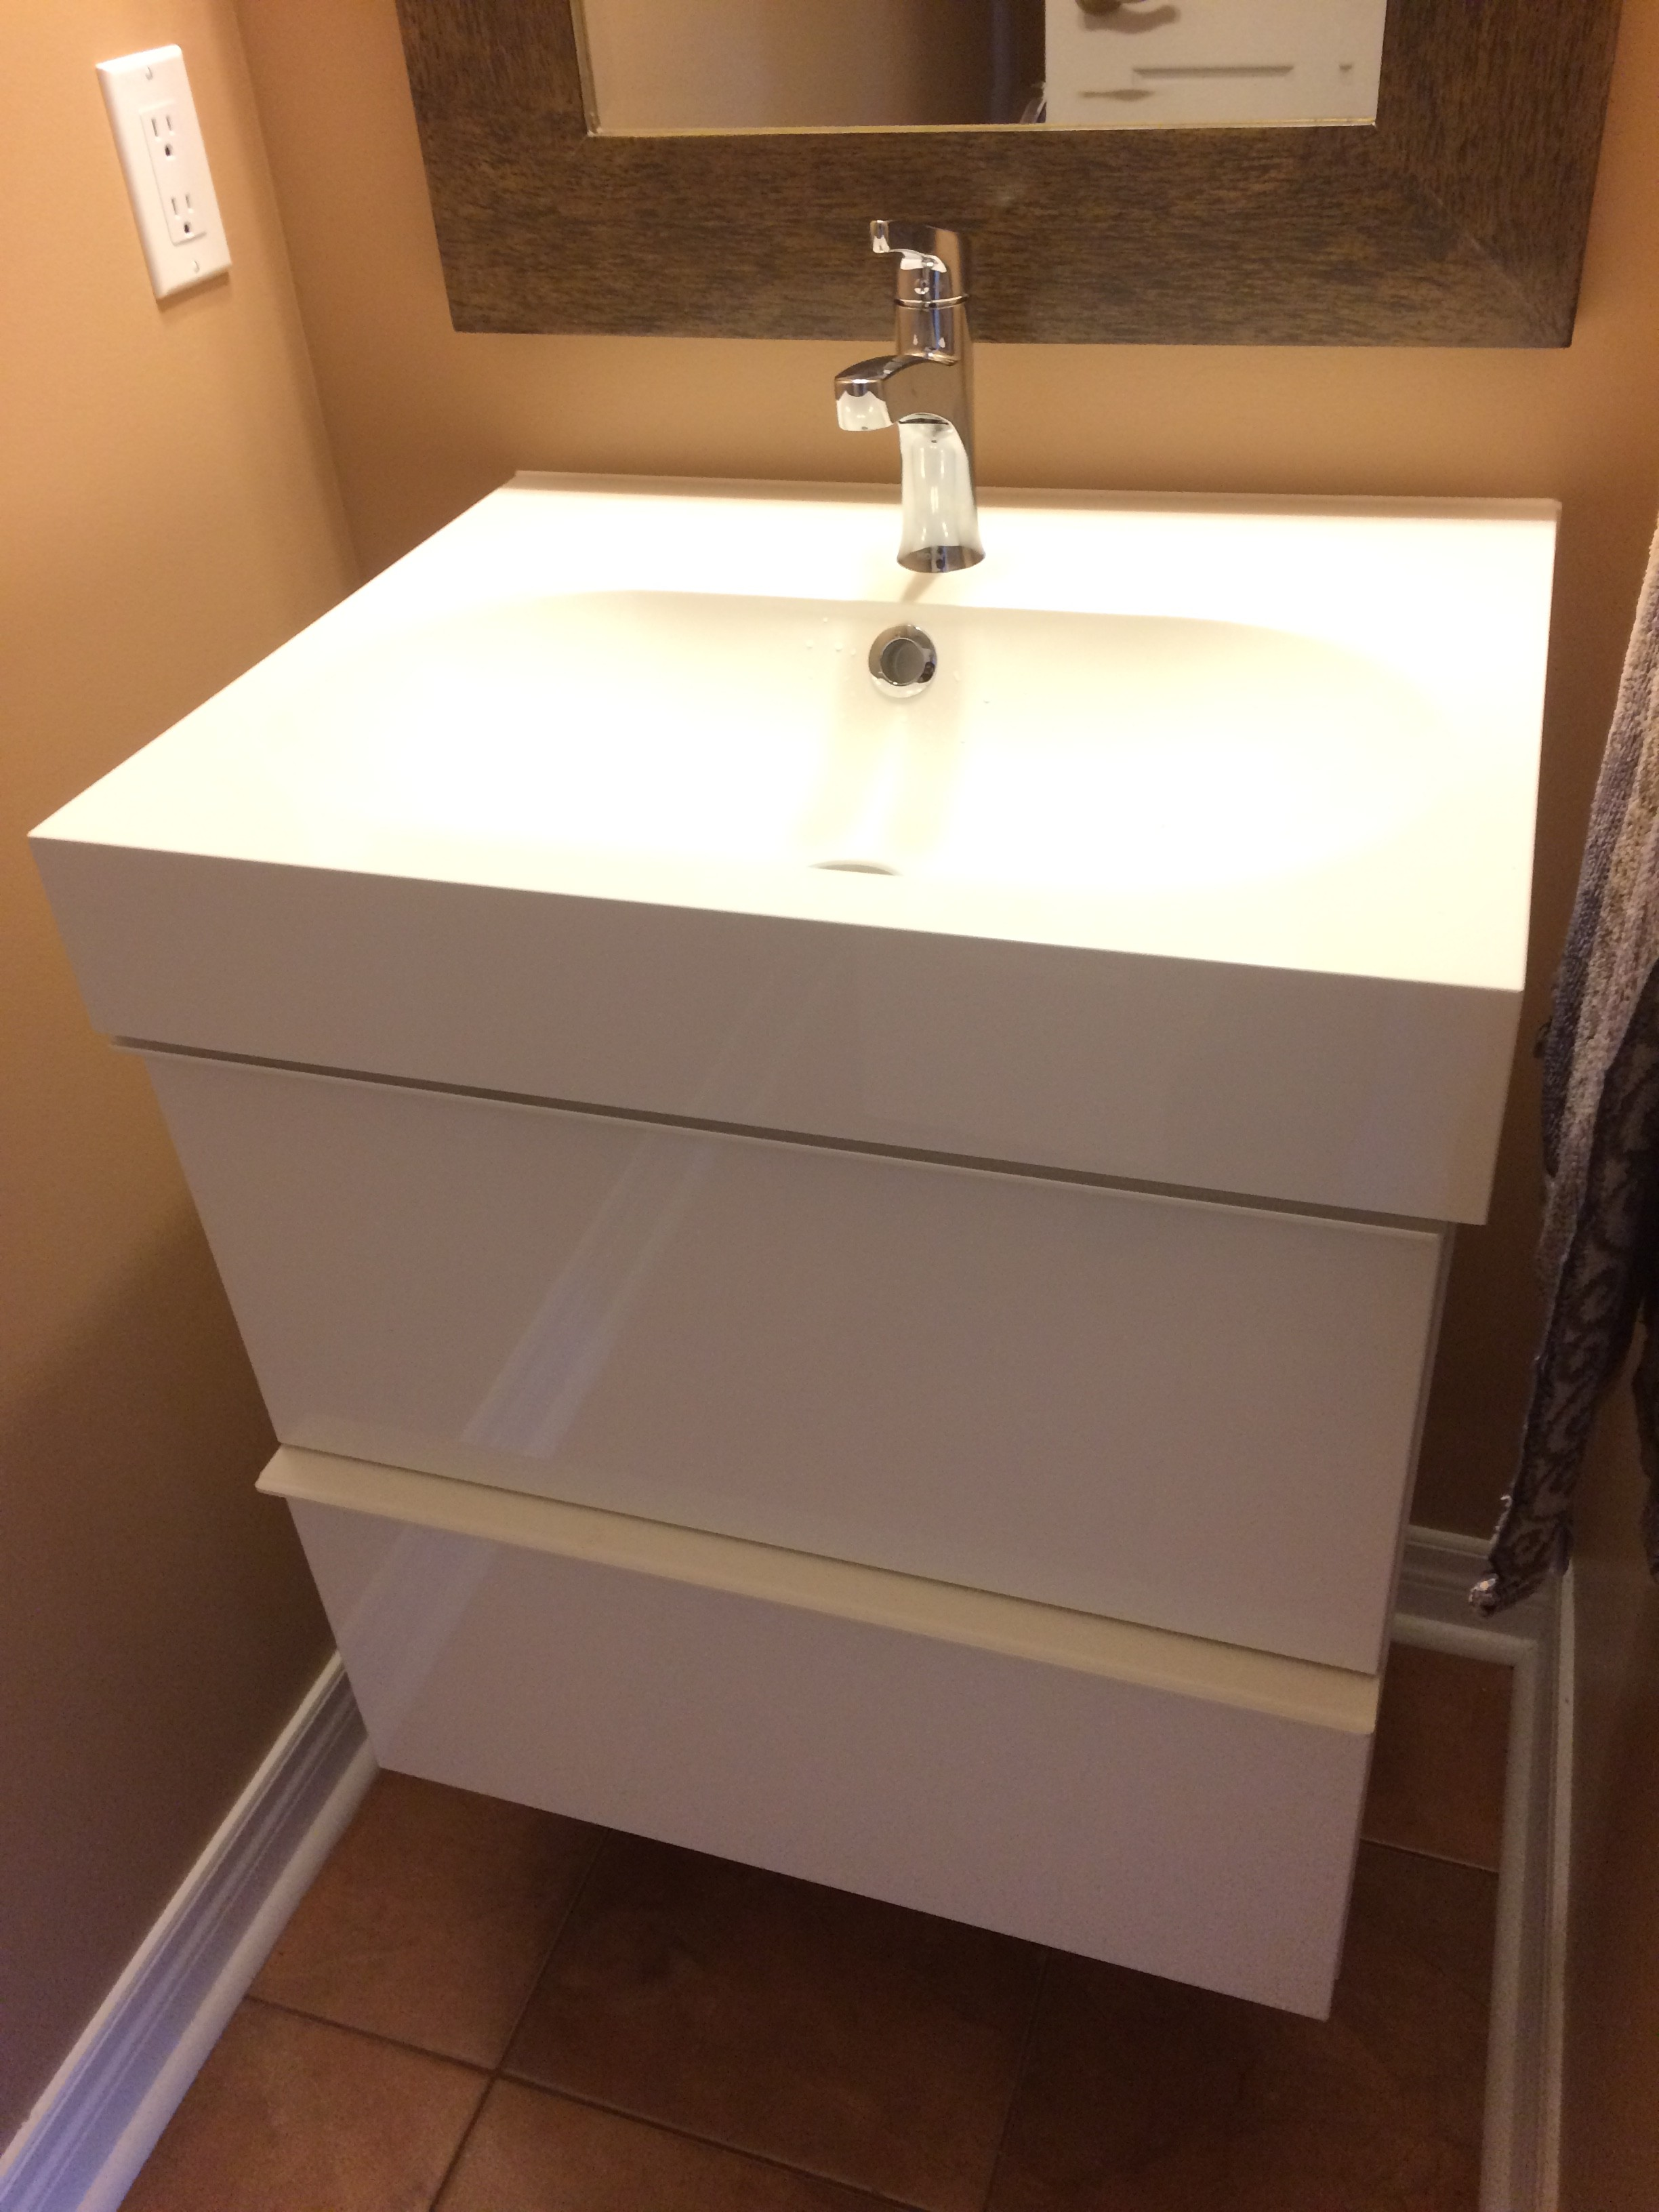 Bath Vanity Ikea New Vanity One Possible Option Ikea Fixitgarycom Fixitgarycom